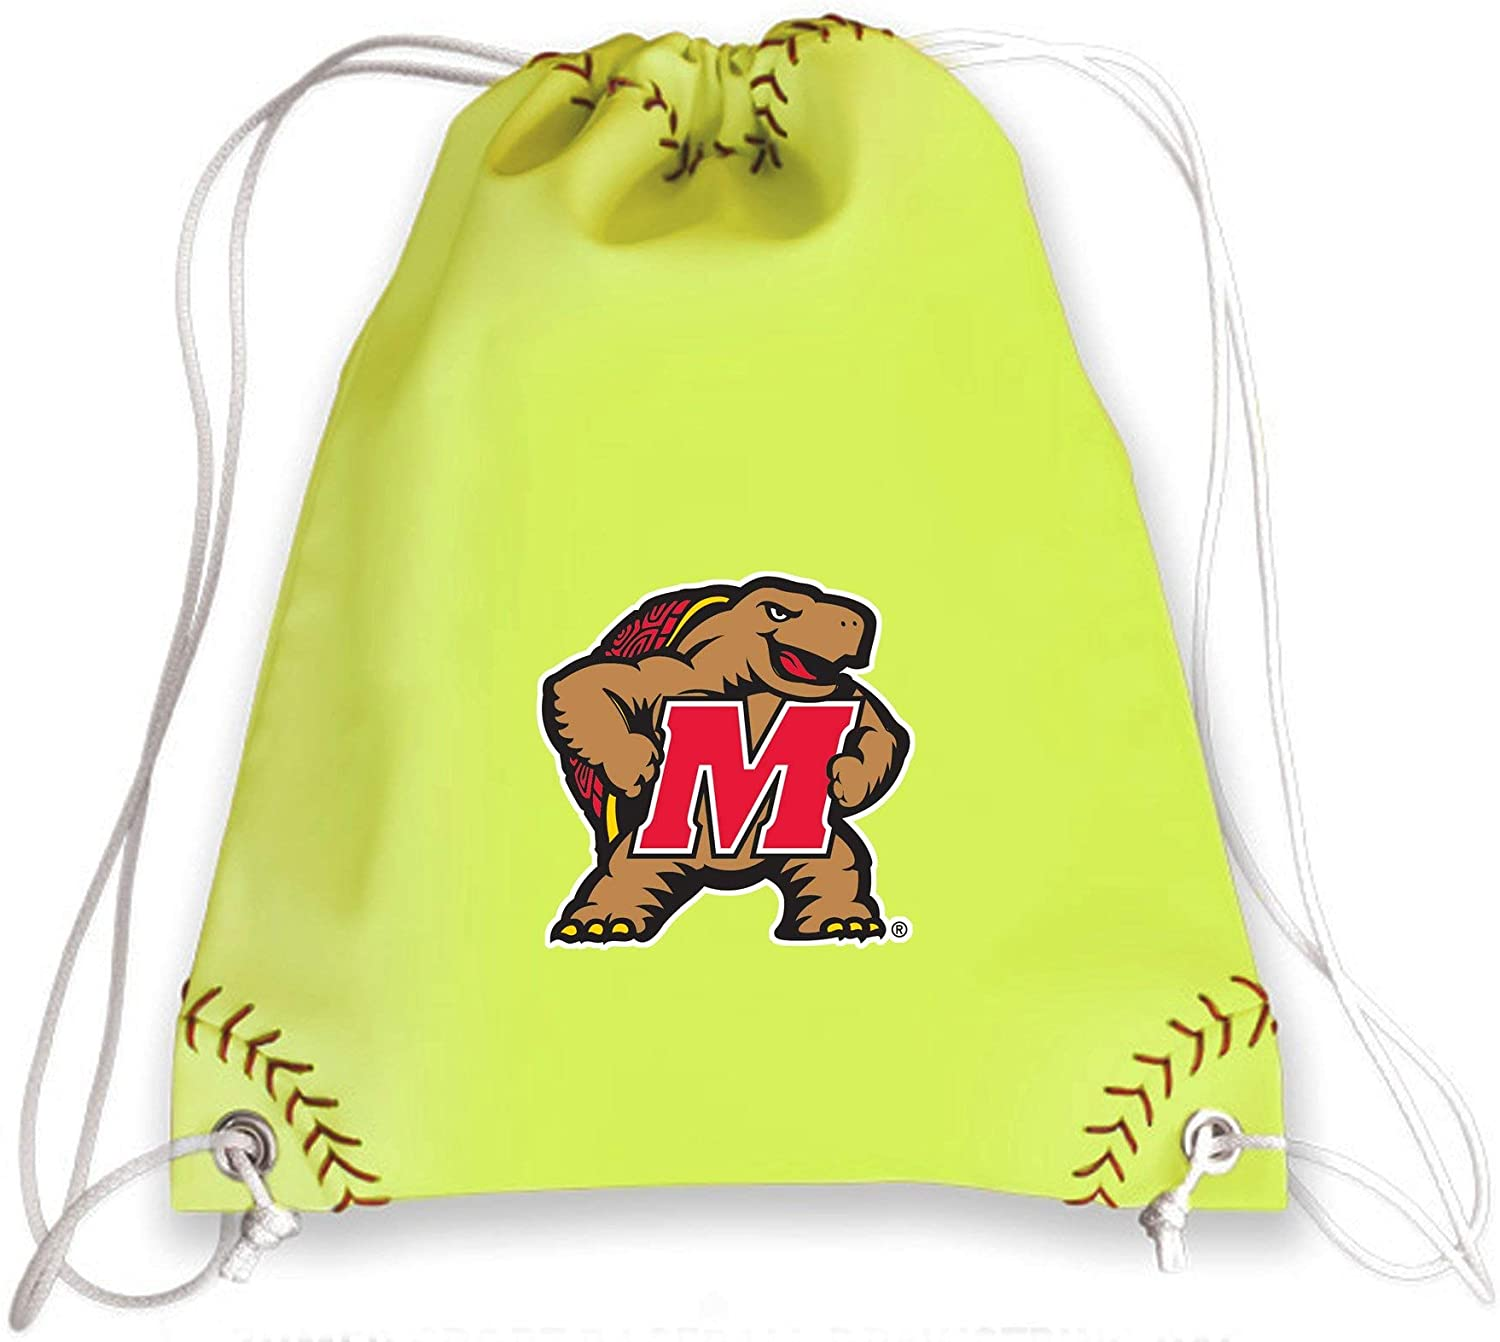 Zumer Sport Maryland Terrapins Softball Leather Drawstring Shoulder Backpack Bag - made from the same exact materials as a softball - Neon Yellow with genuine red stitching